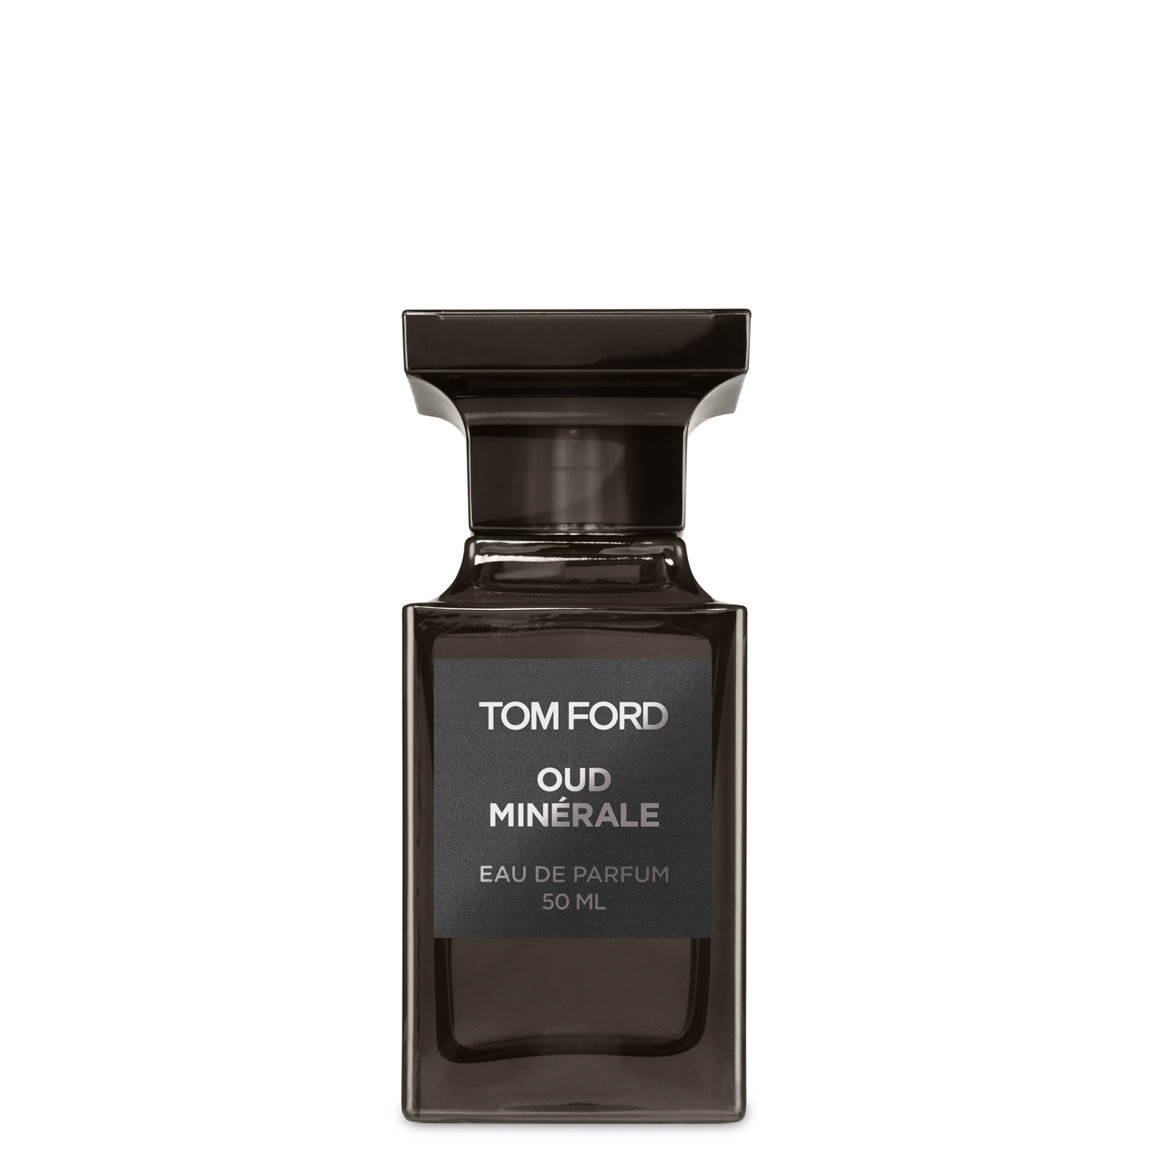 TOM FORD Oud Minérale product swatch.